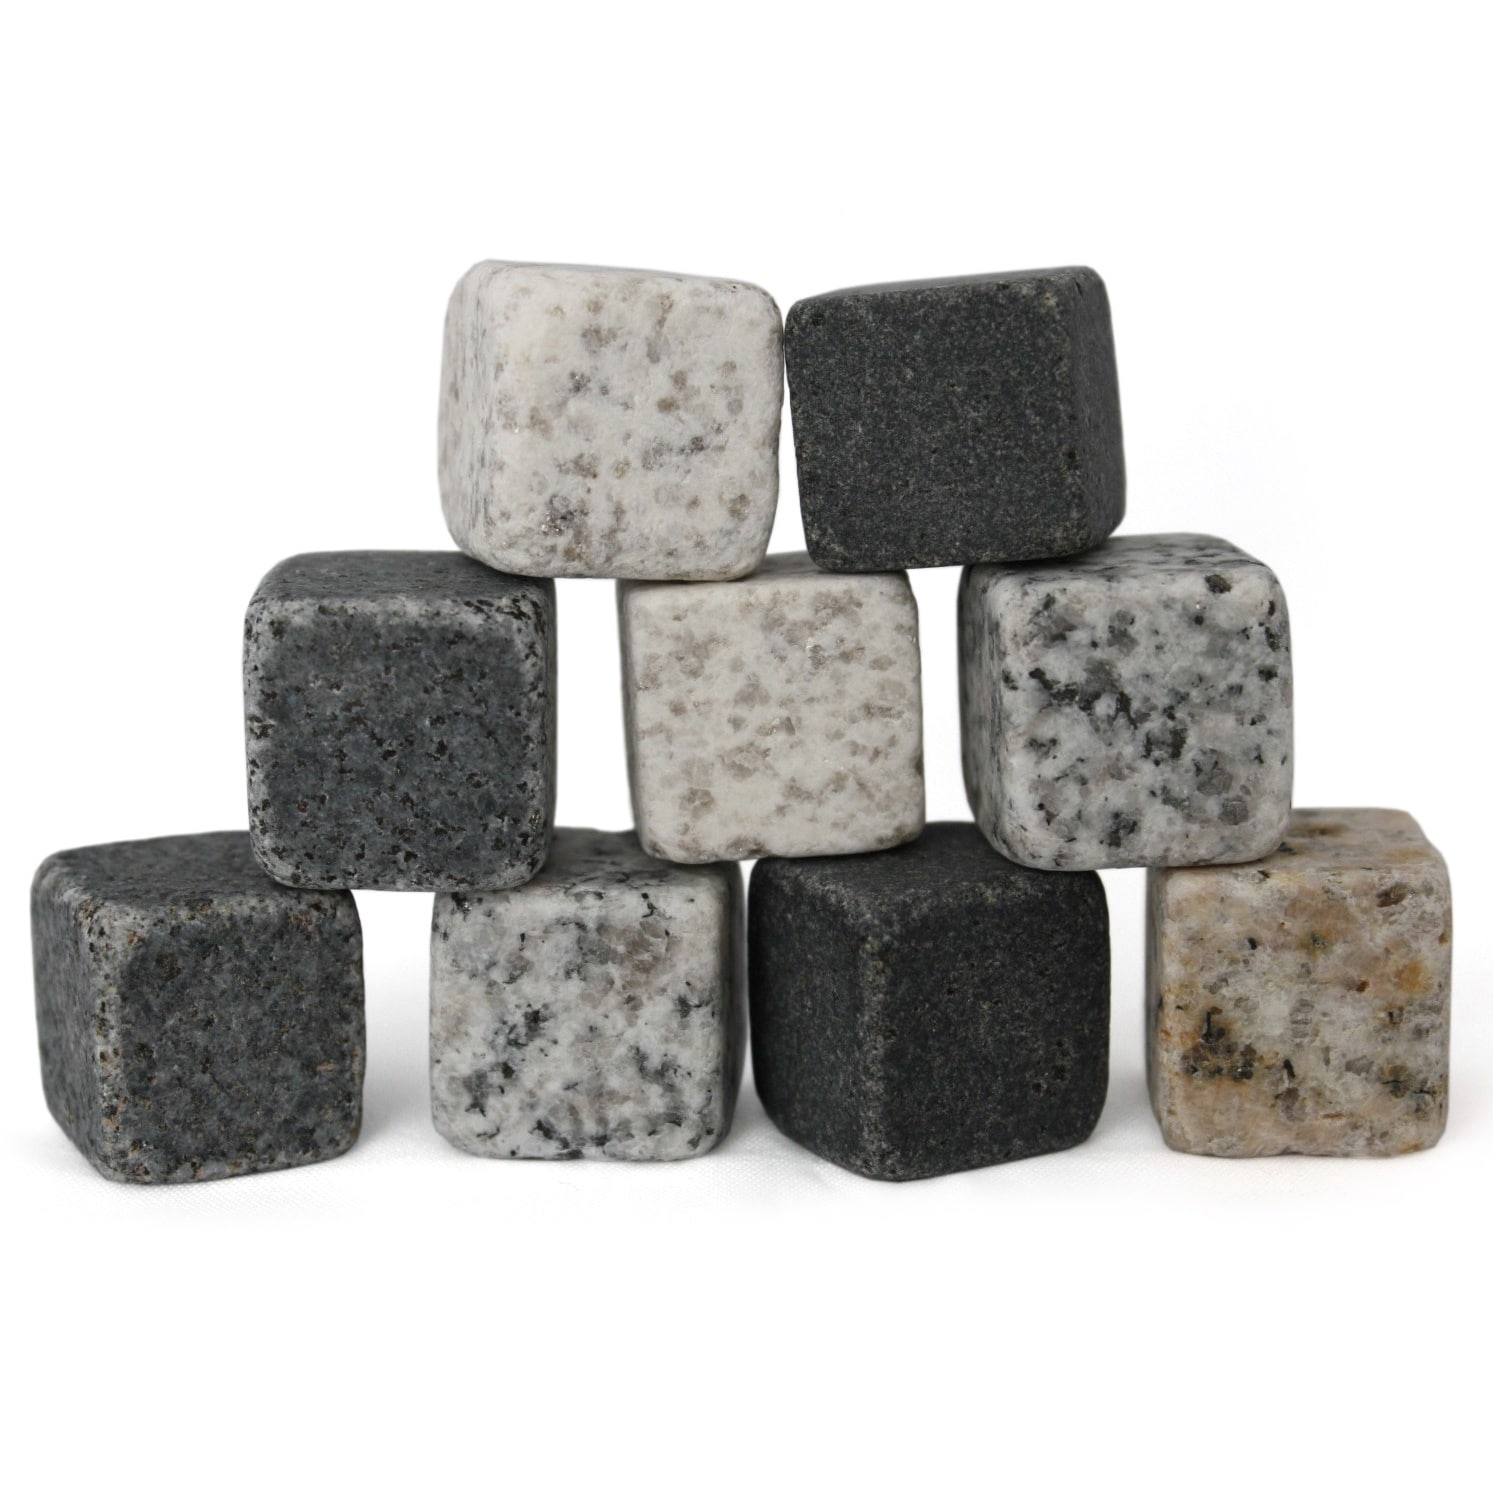 odash 9-Piece Whiskey Stone Set